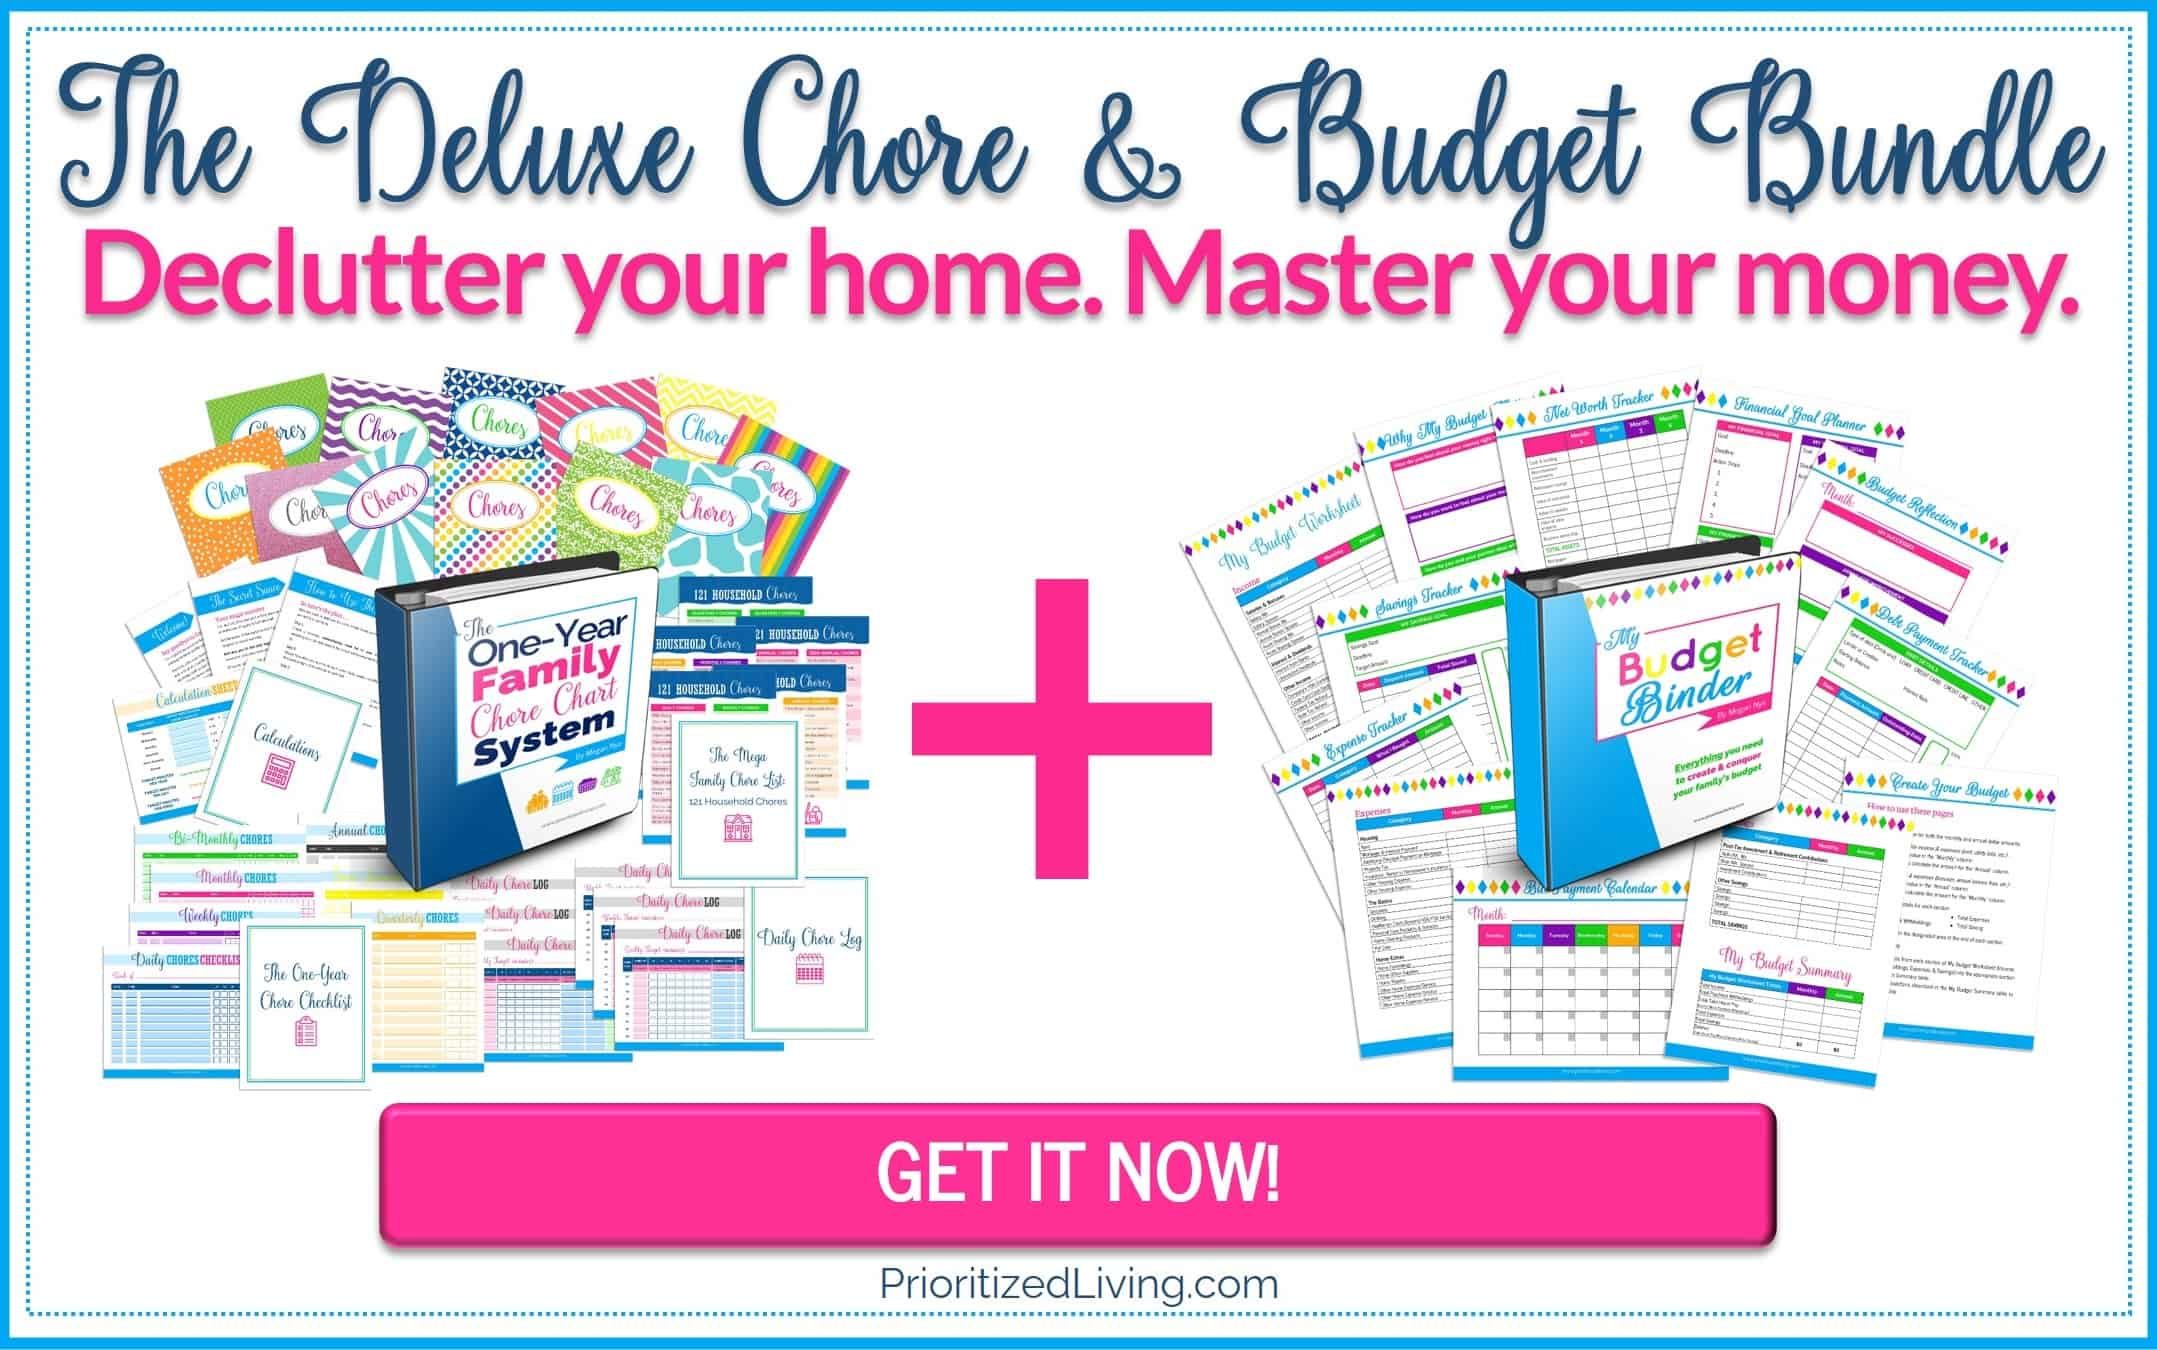 The Deluxe Chore and Budget Bundle